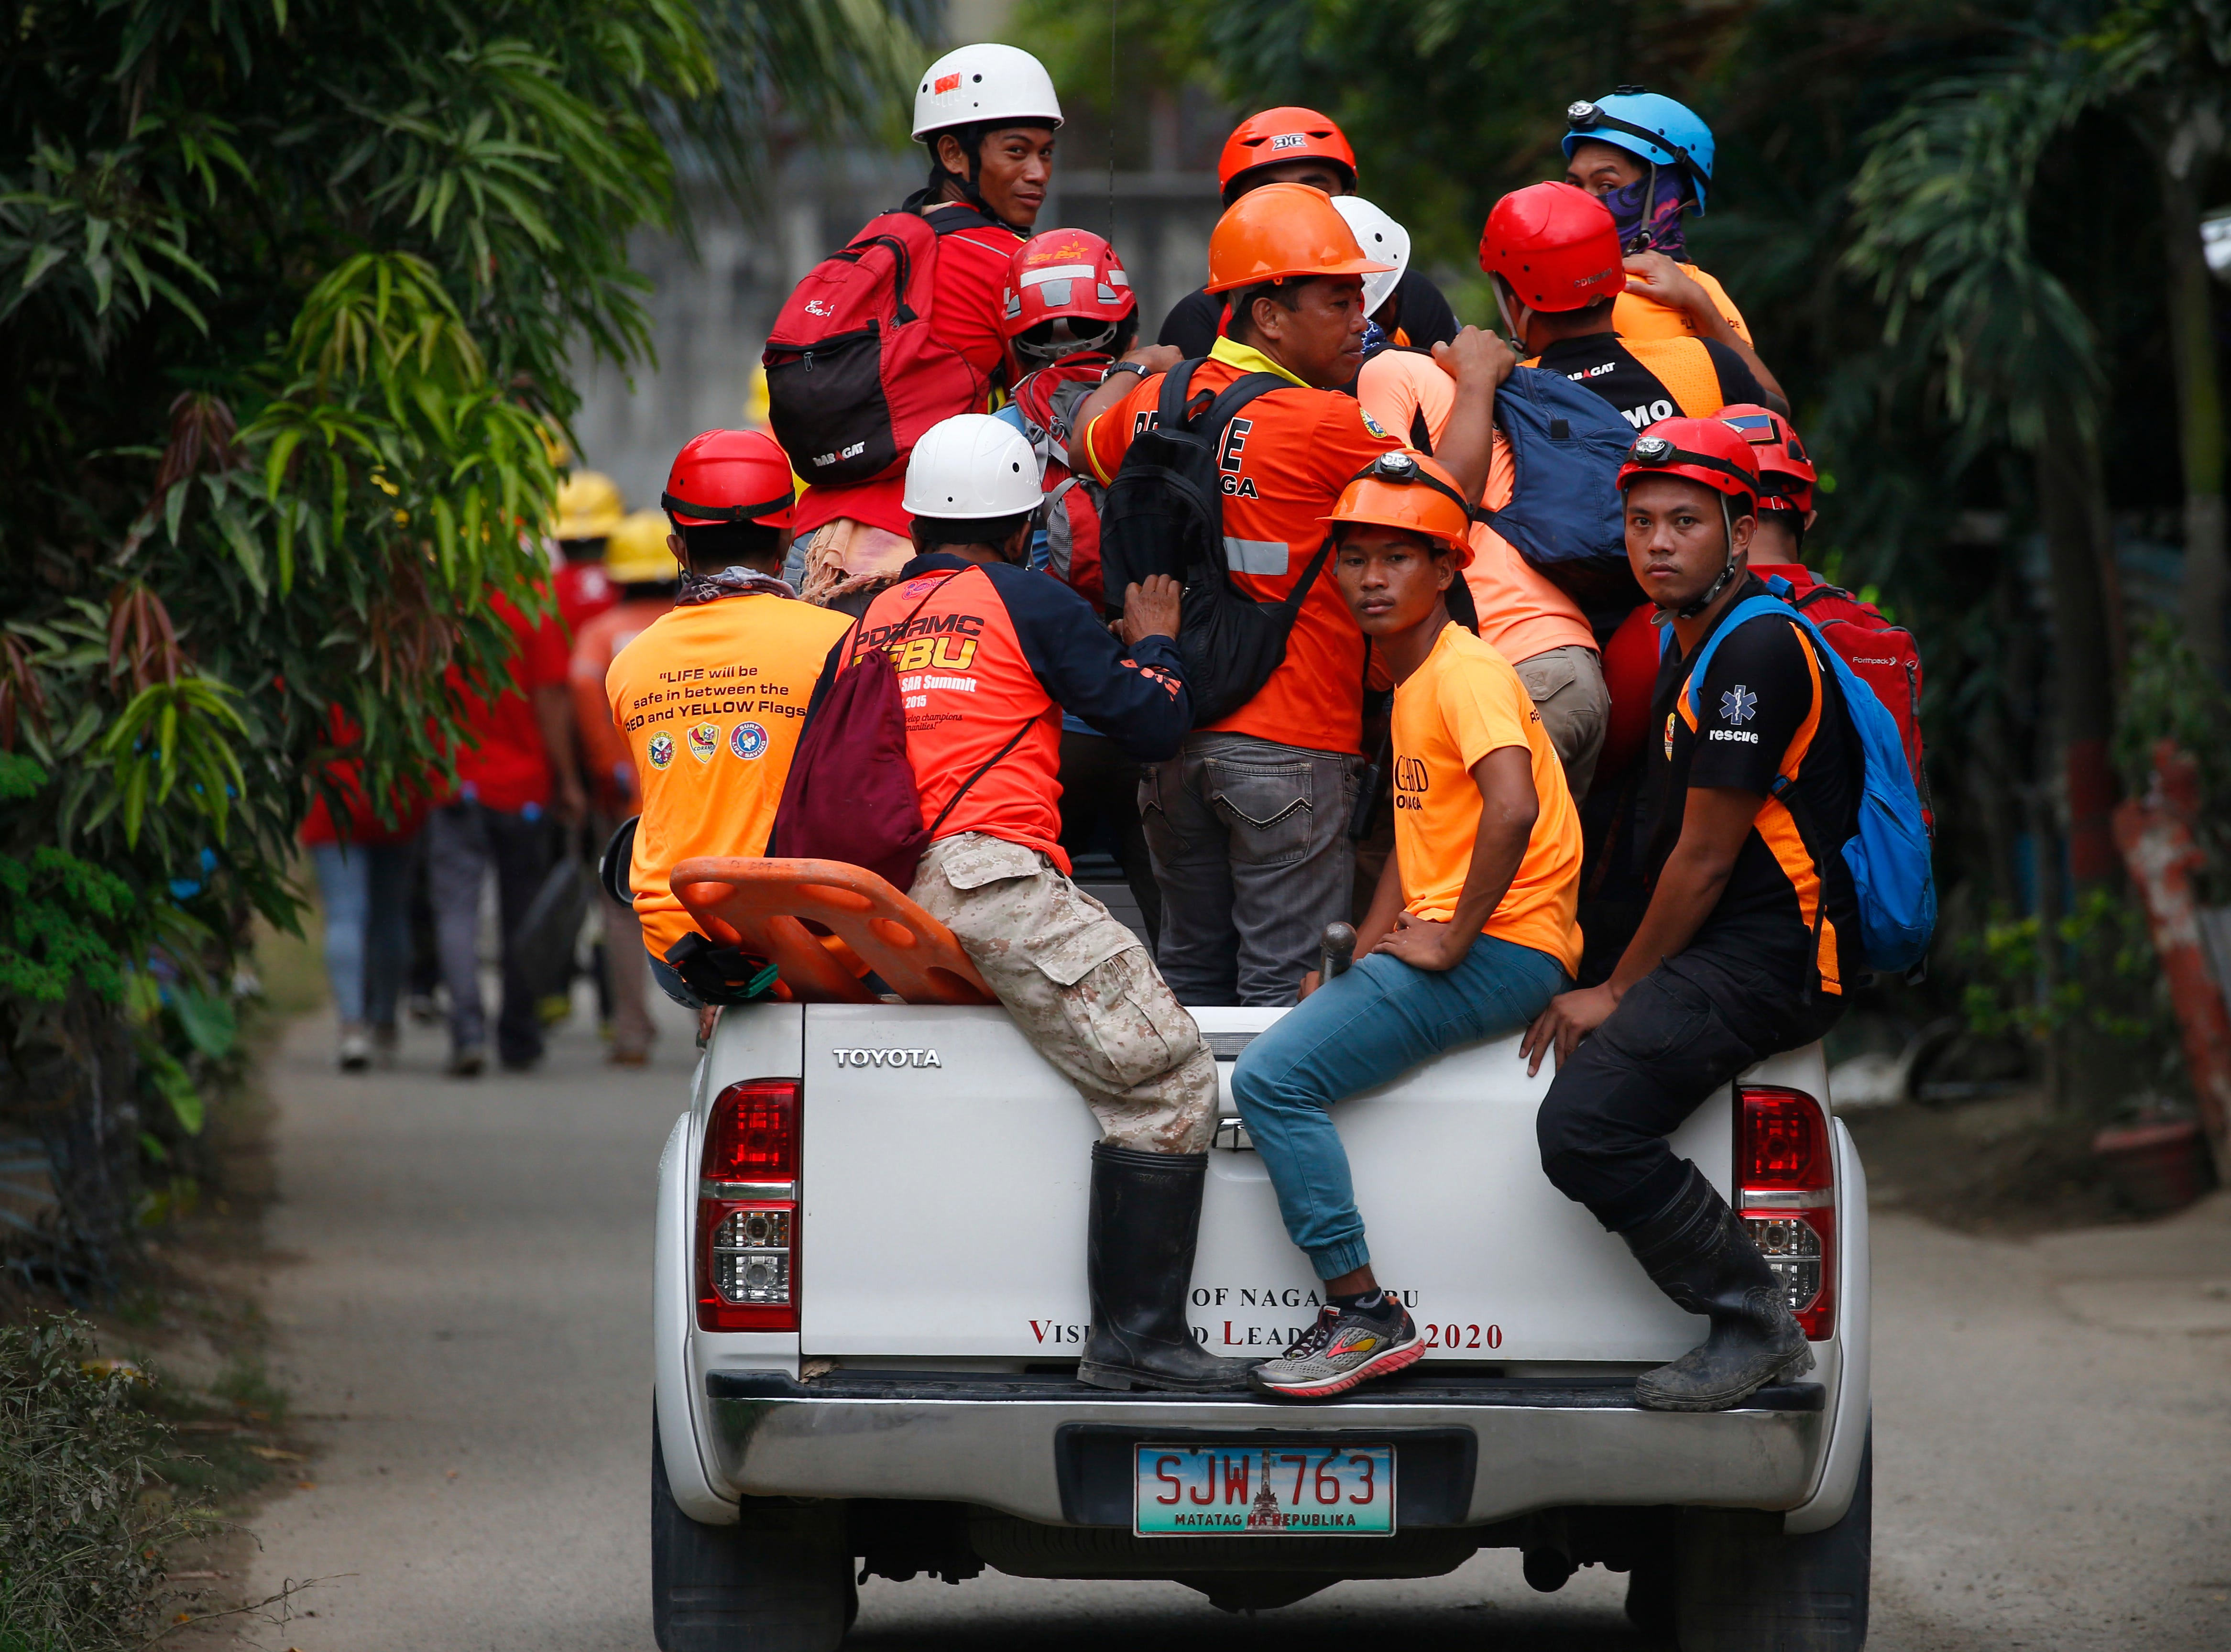 Rescuers continue operations for  a second day Friday, Sept. 21, 2018, following the massive landslide that buried homes under part of a mountainside City of Naga in the central Philippines, killing more than two dozen people. Several others were listed as missing.